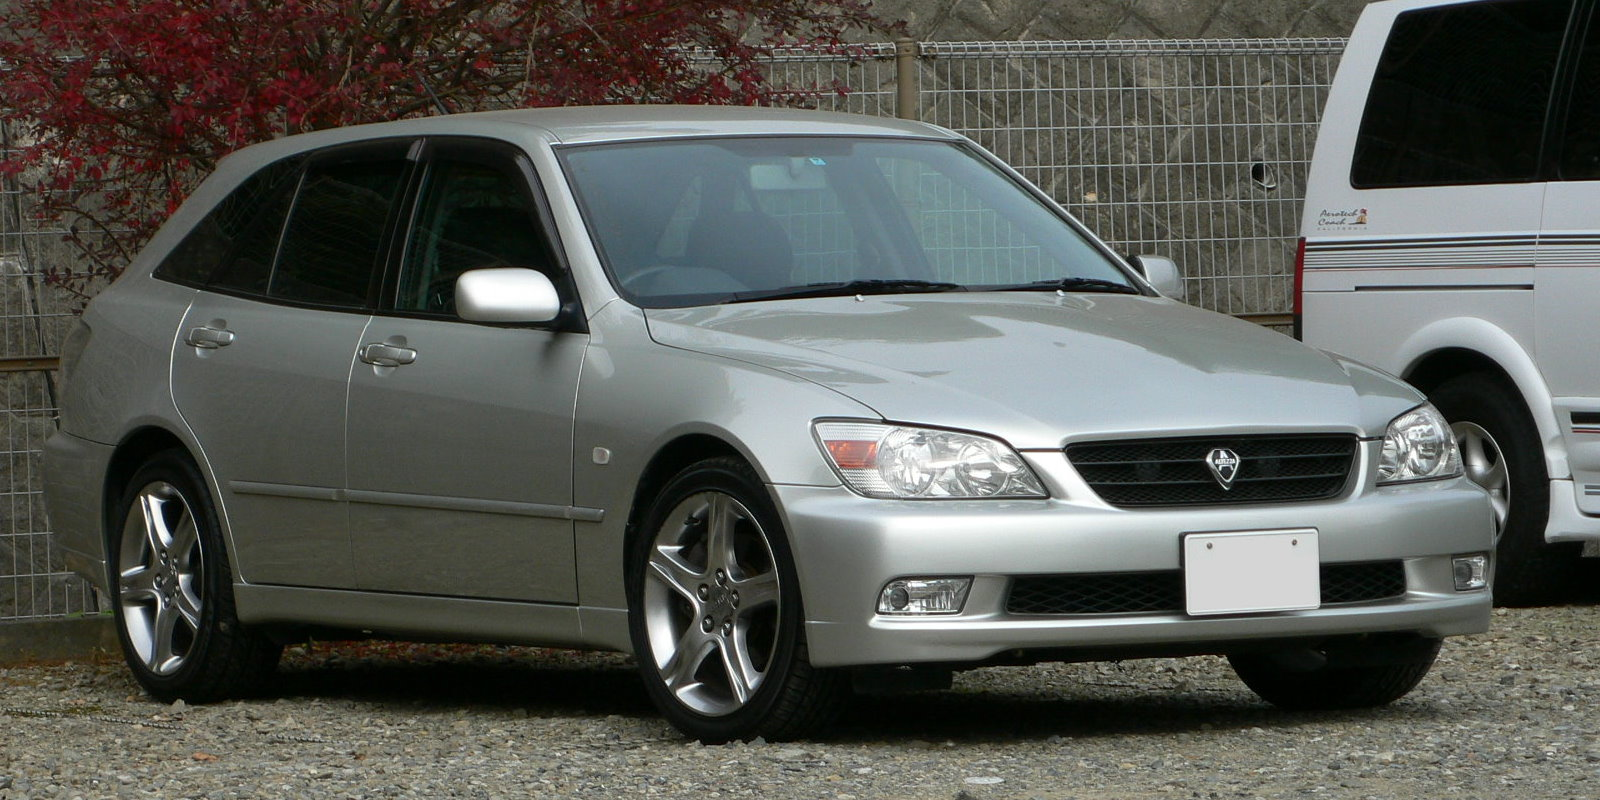 2001 toyota altezza gita as200 related infomation,specifications